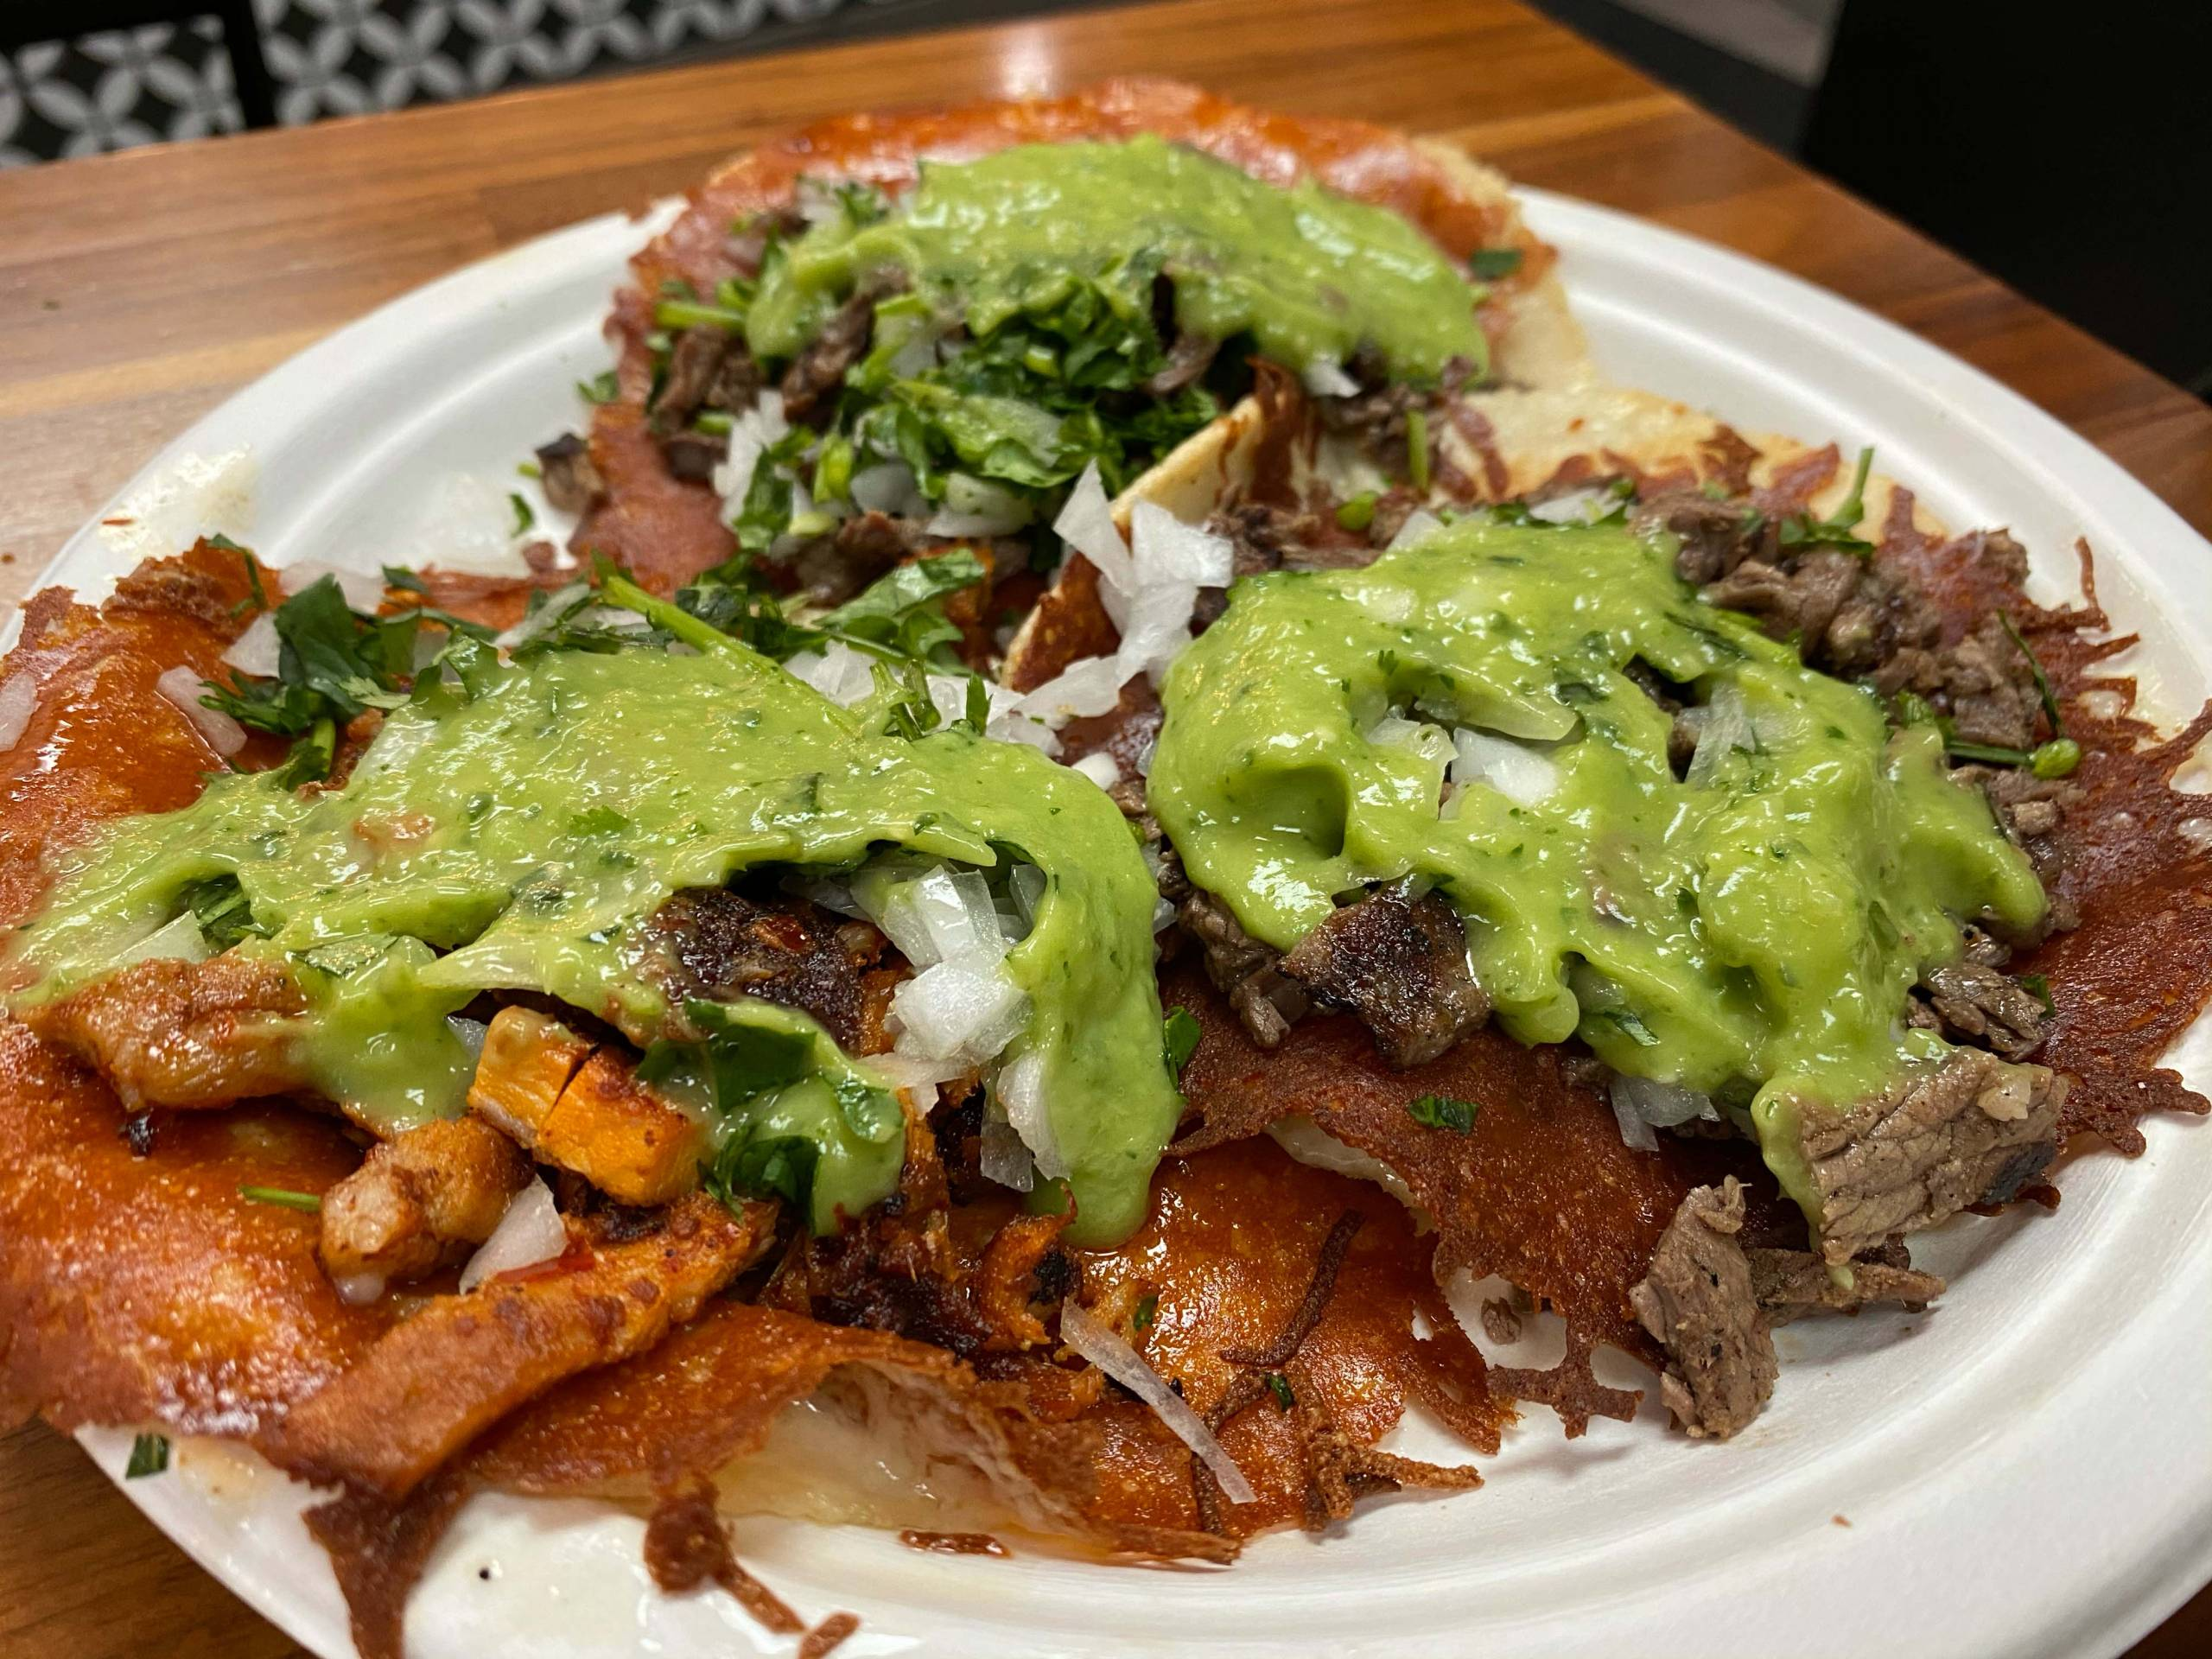 Three tacos, topped with guacamole and crispy cheese, on a paper plate.